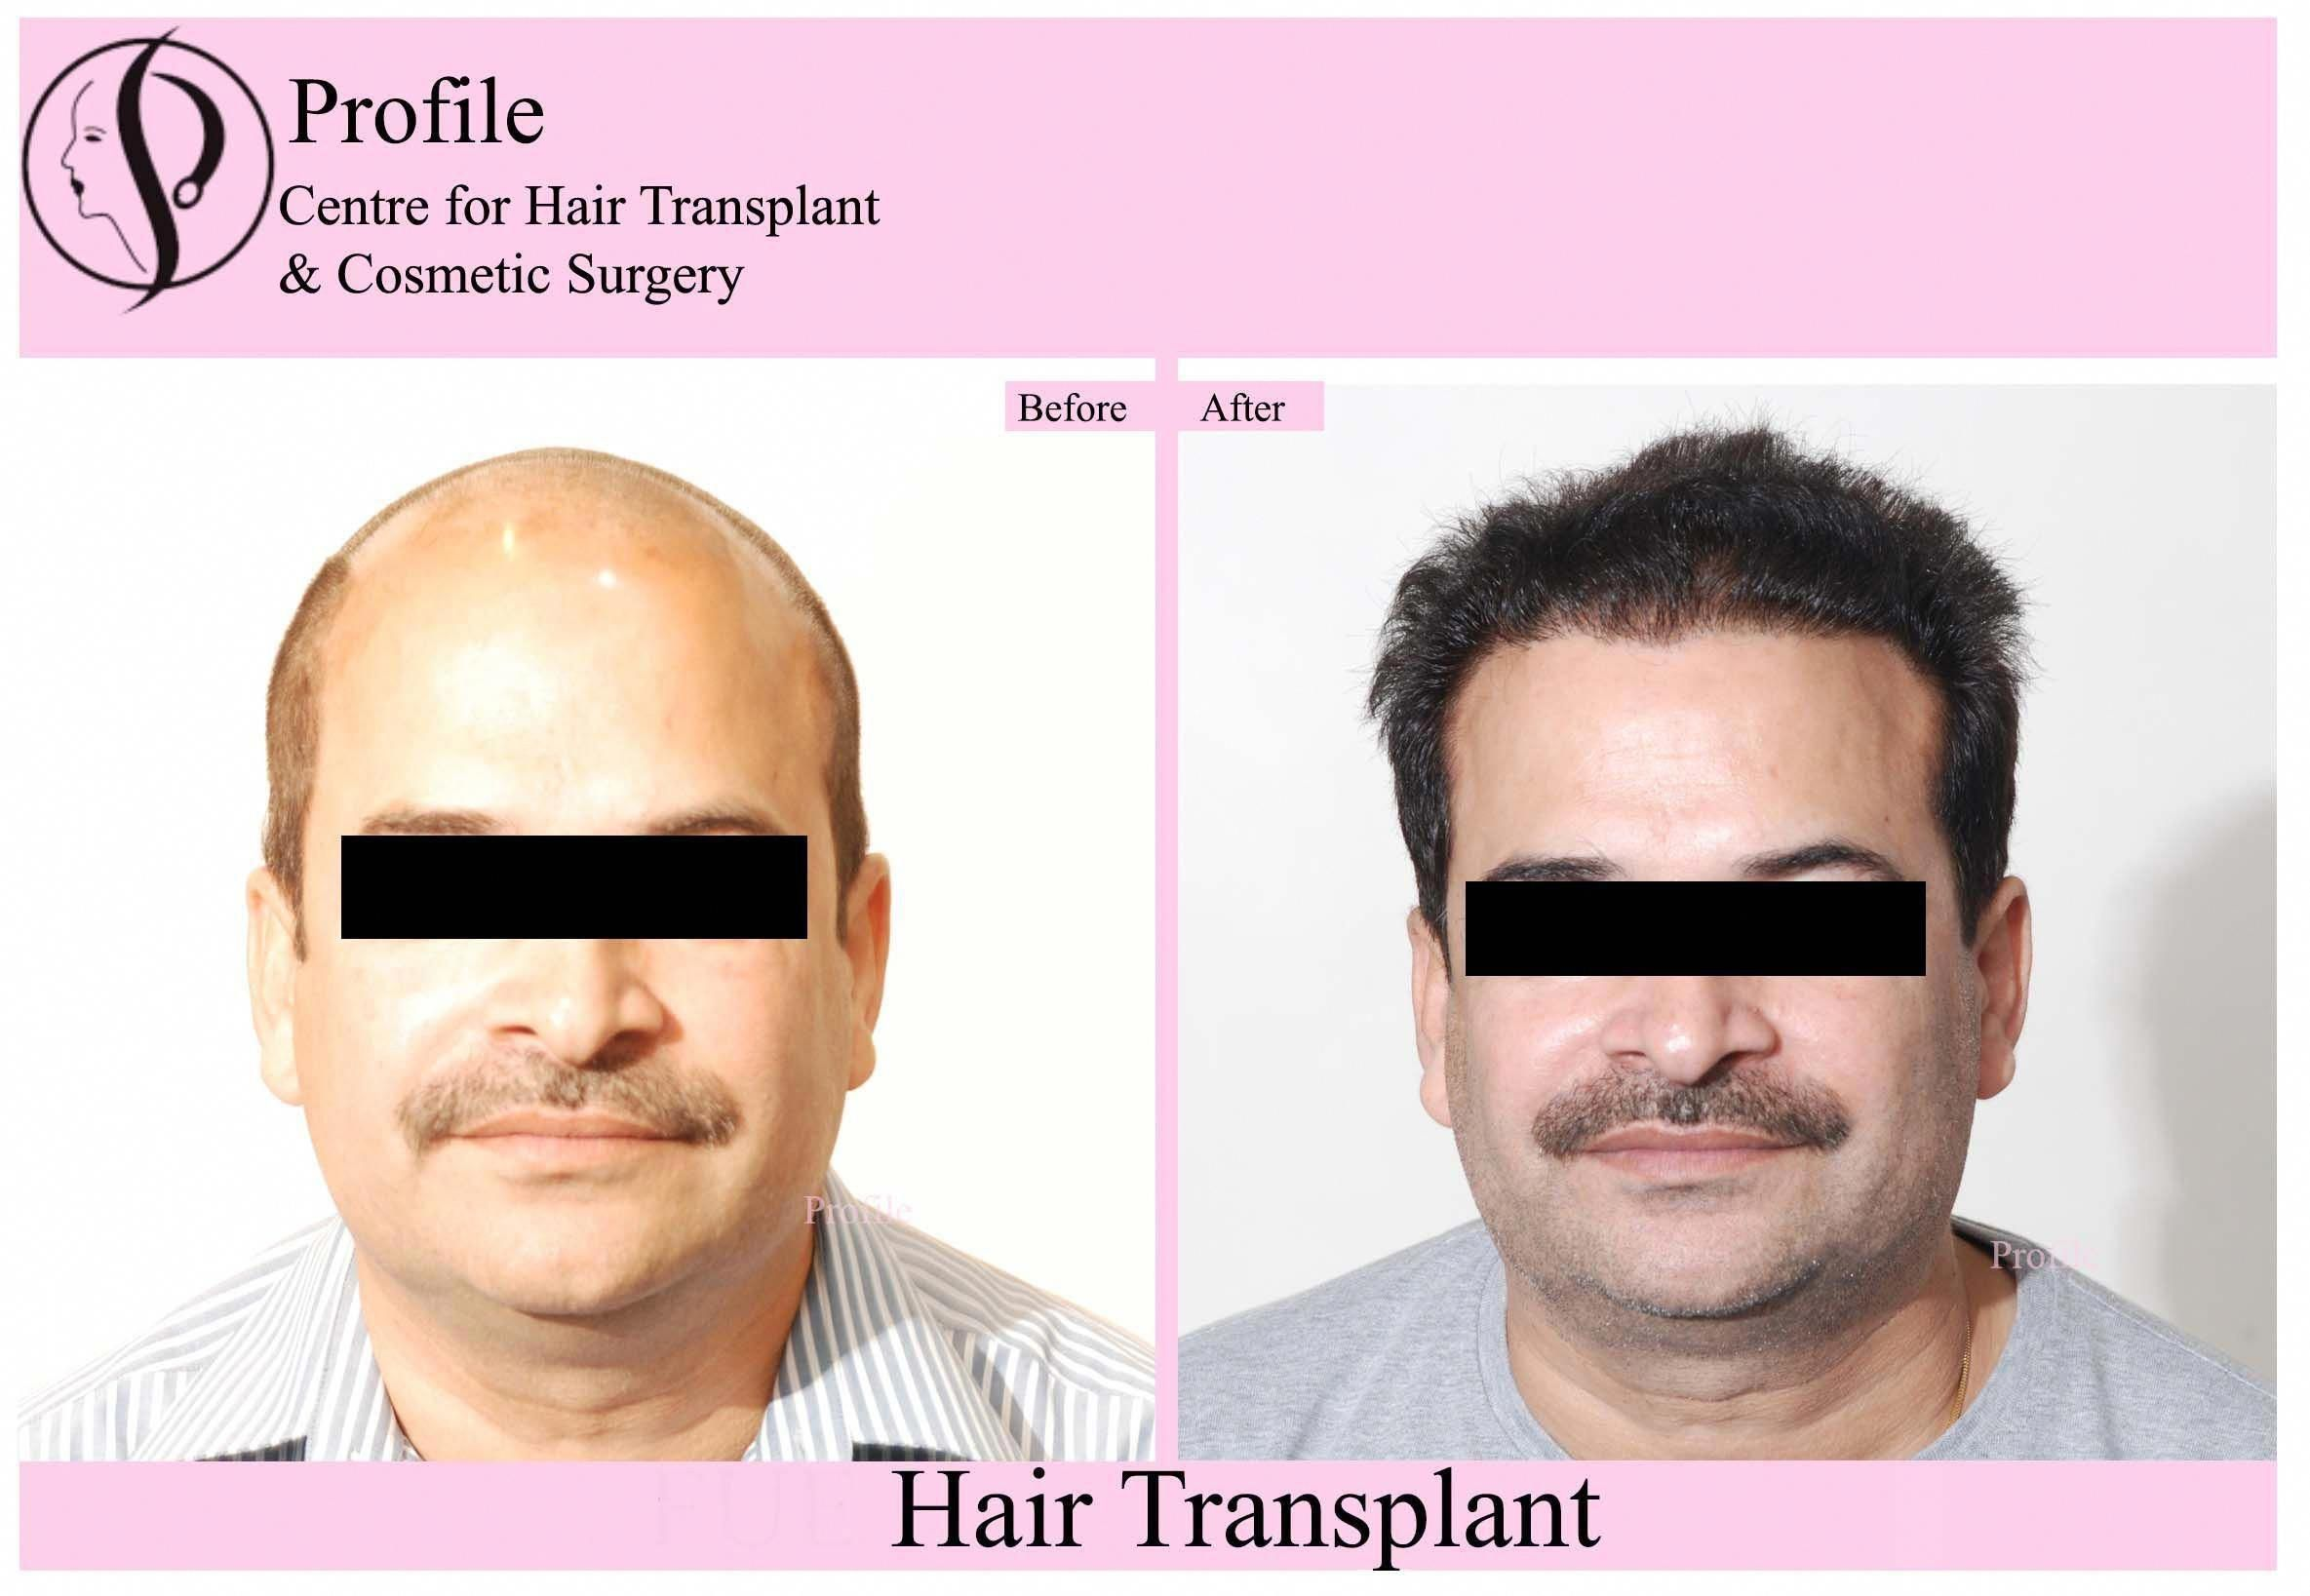 Check Out The Latest Result Of Body Hair Transplant Surgery Surgery Provides With Latest Techniqu Hair Transplant Surgery Hair Transplant Hair Transplant Cost